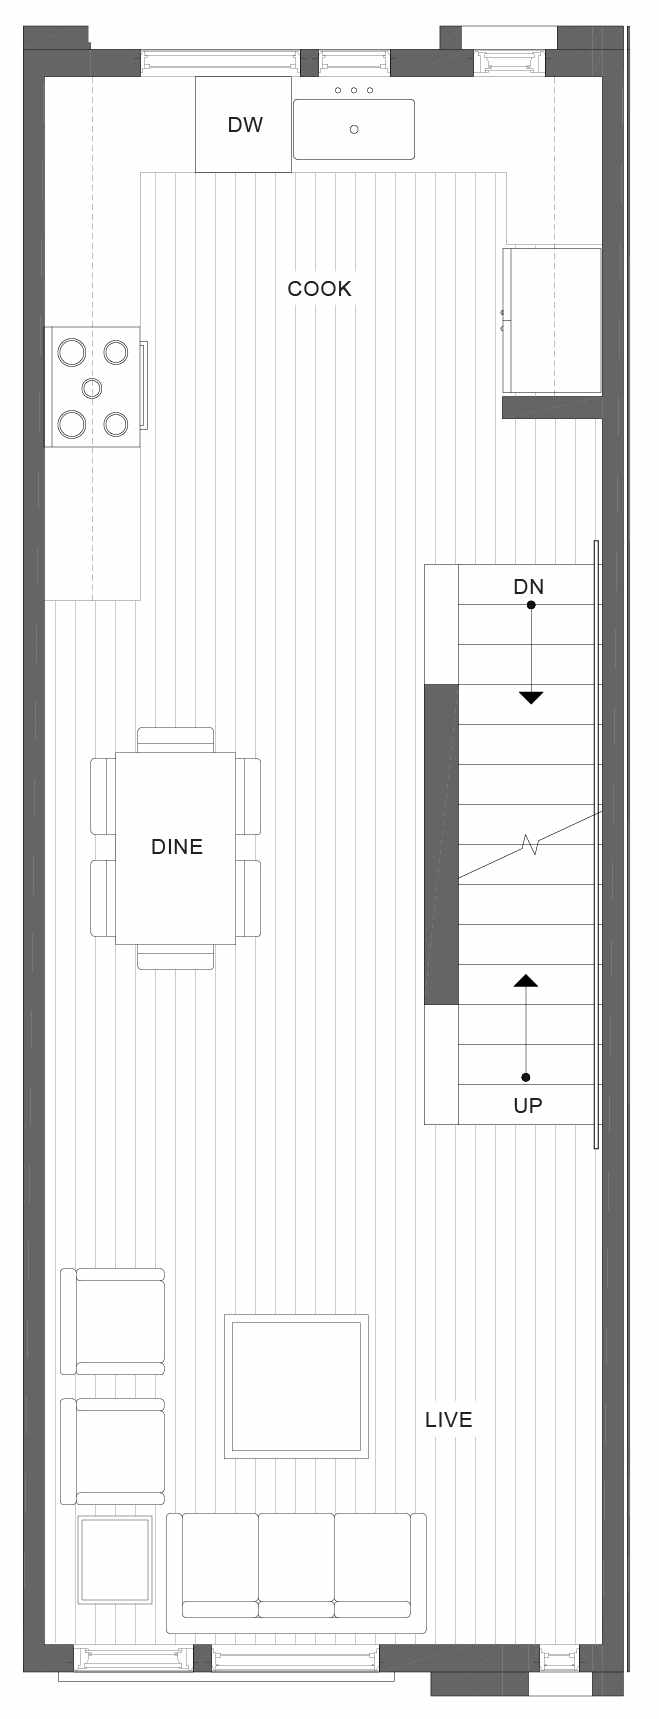 Second Floor Plan of 1105B 14th Ave in the Corazon Central Townhomes